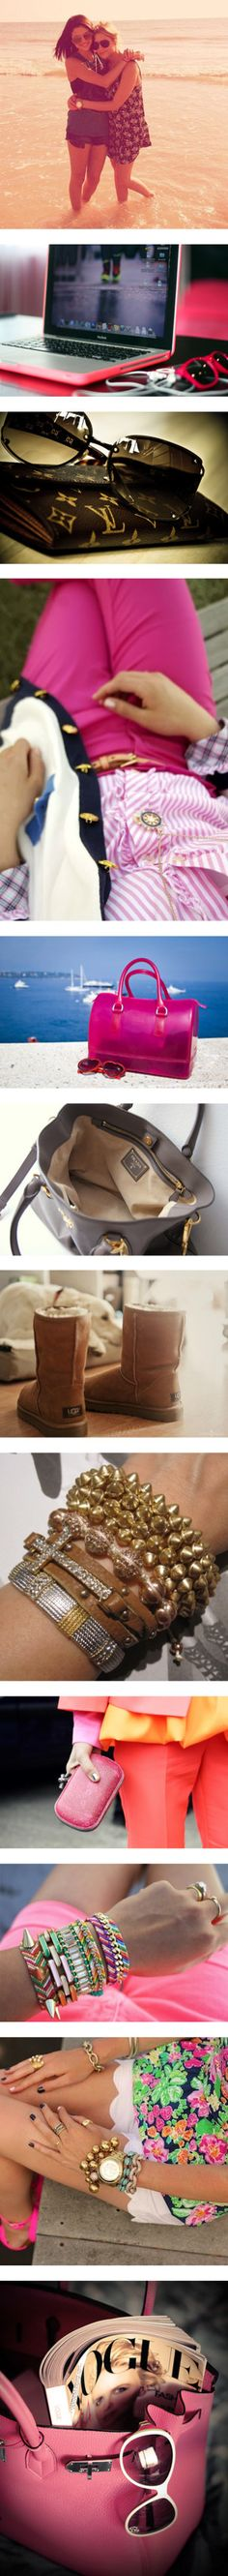 """""""Instagram 2"""" by andreynnacamelo ❤ liked on Polyvore"""